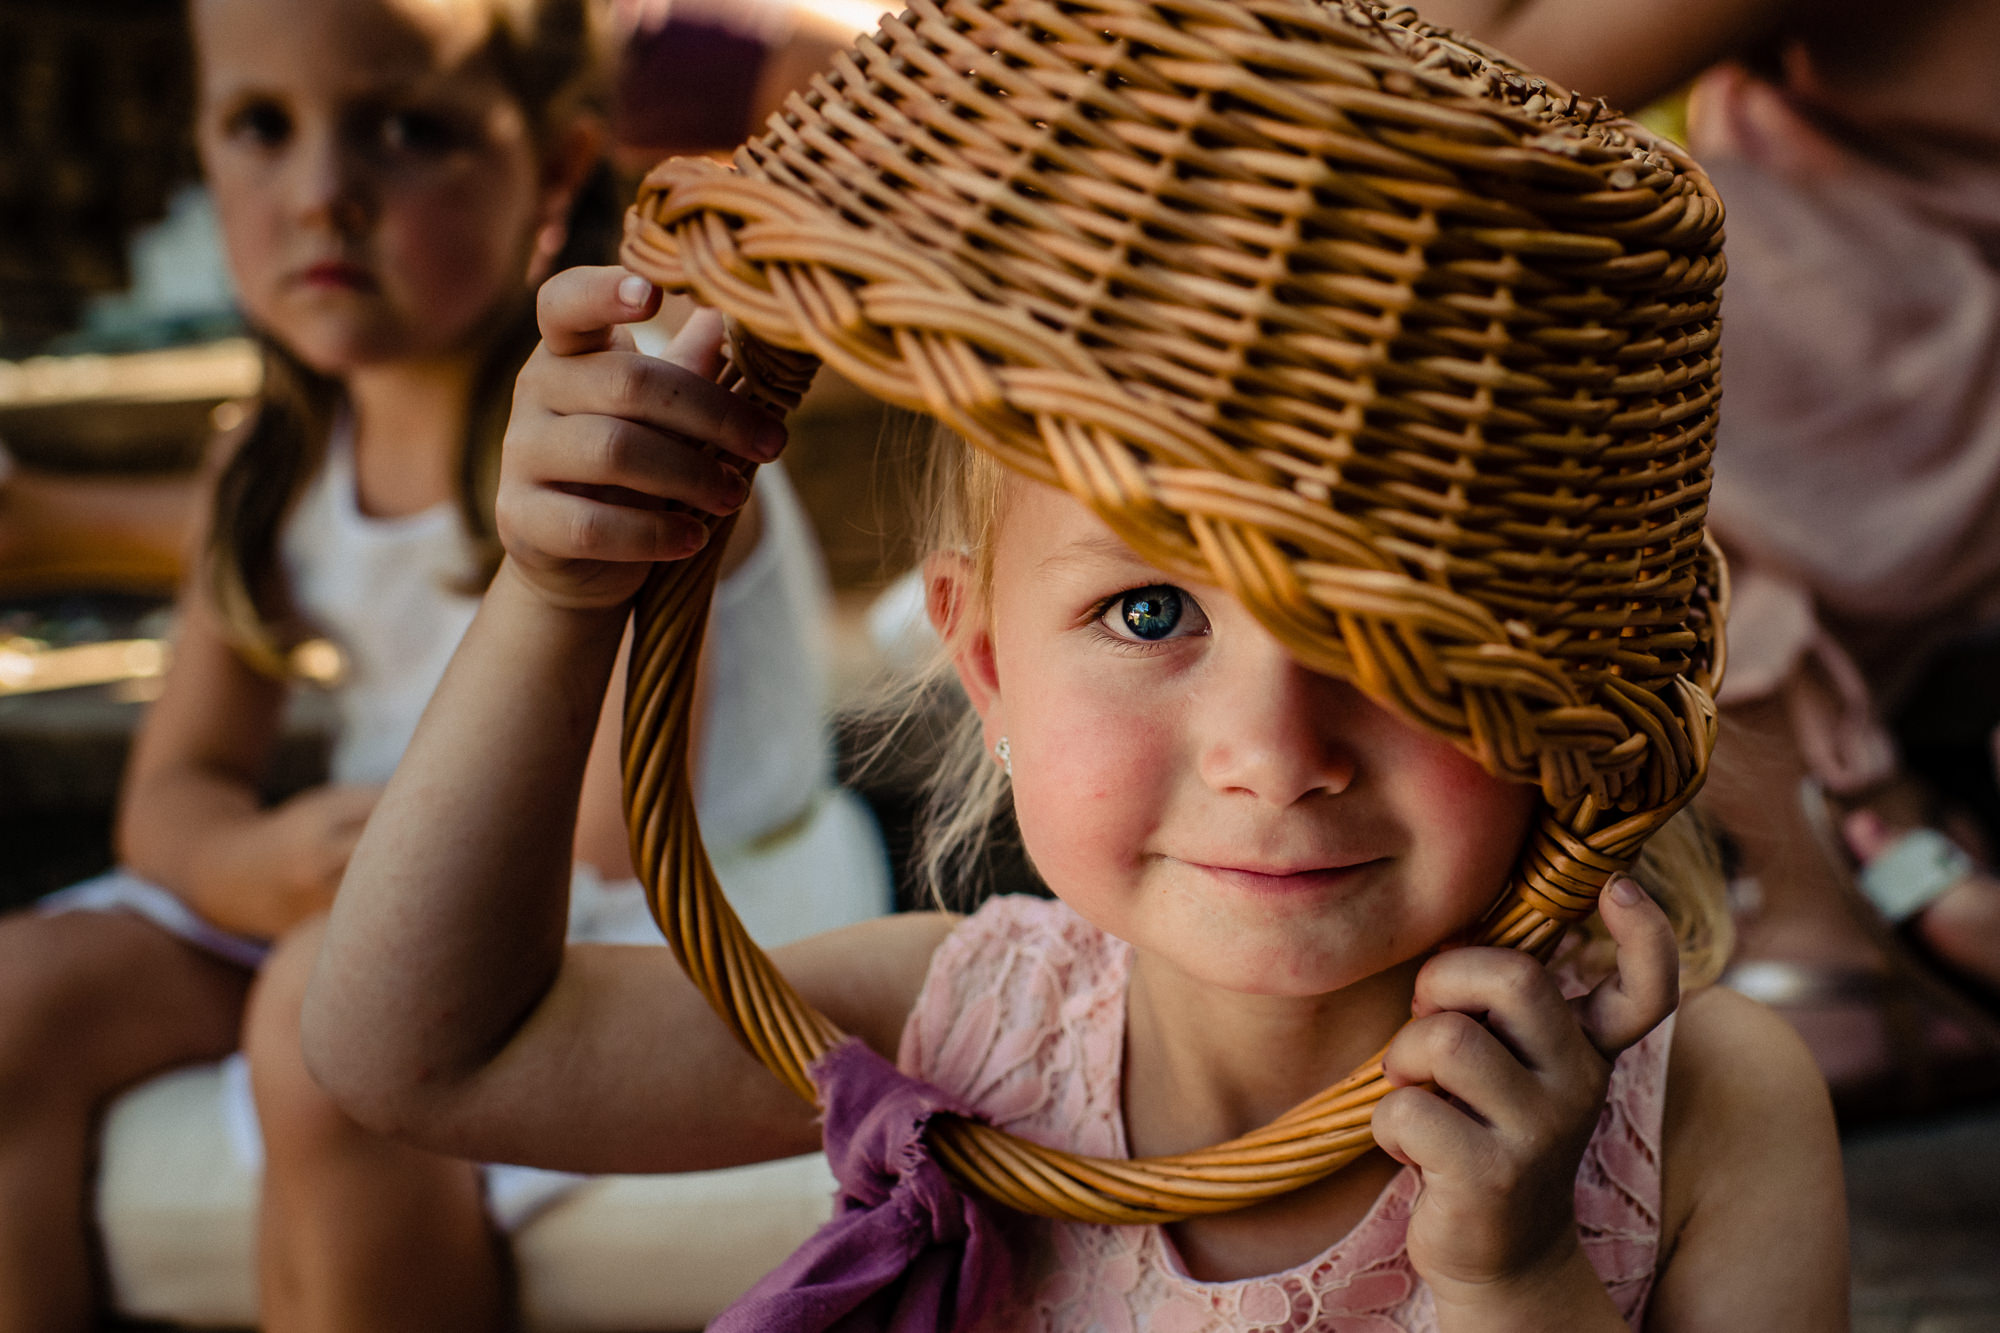 Flower girls face under her empty basket - photo by Eppel Photography